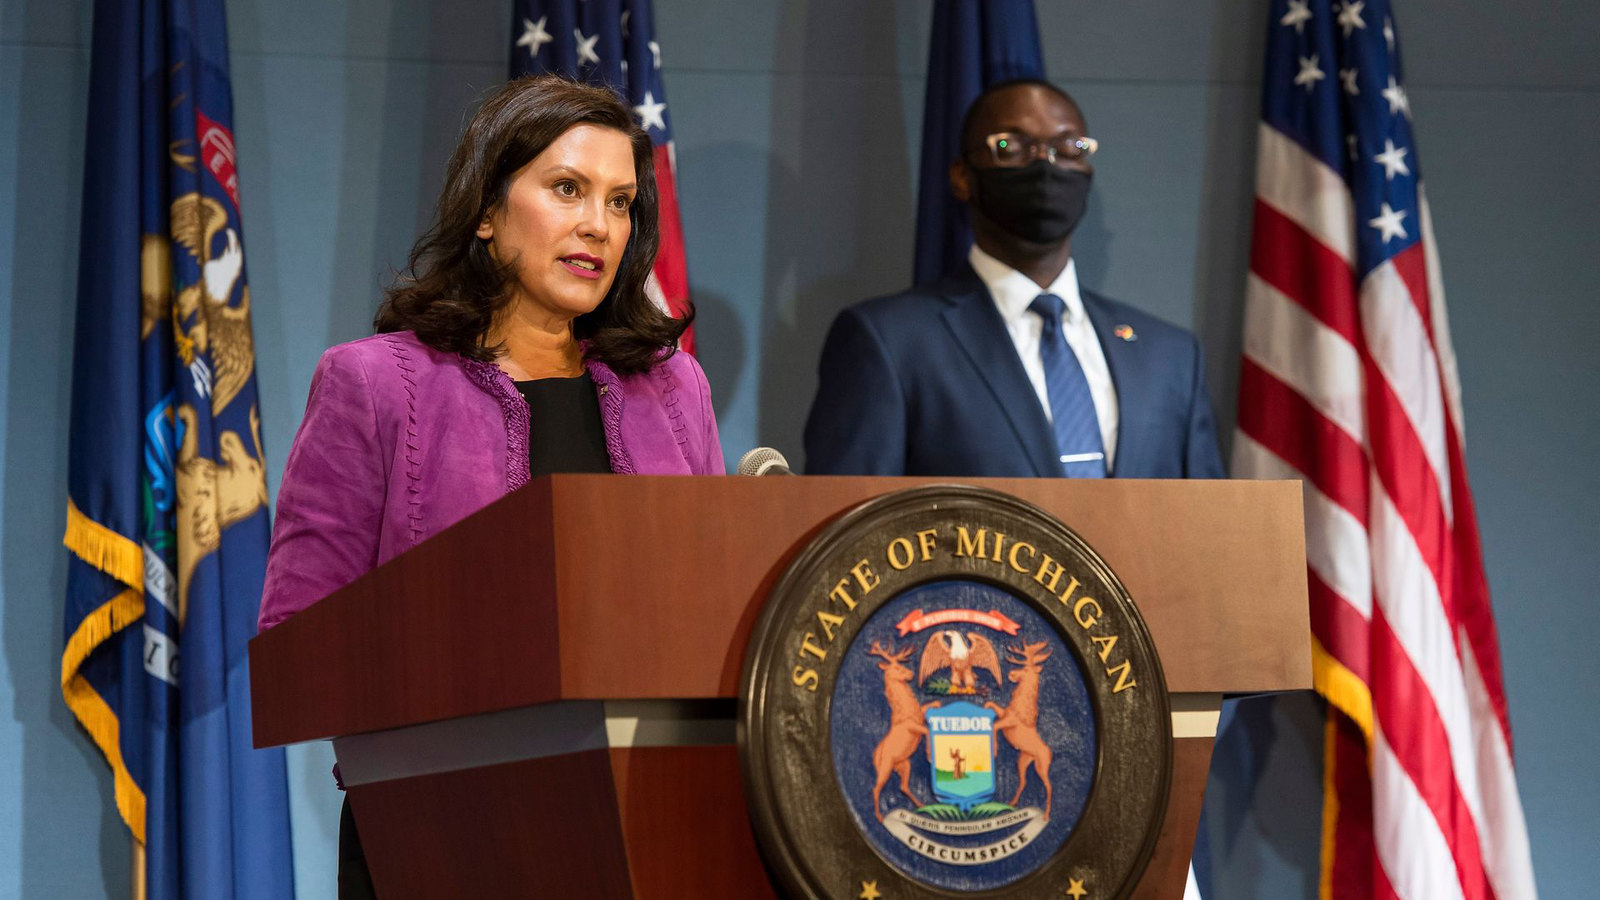 Governor Whitmer Reacts to Successful COVID-19 Vaccine Analysis